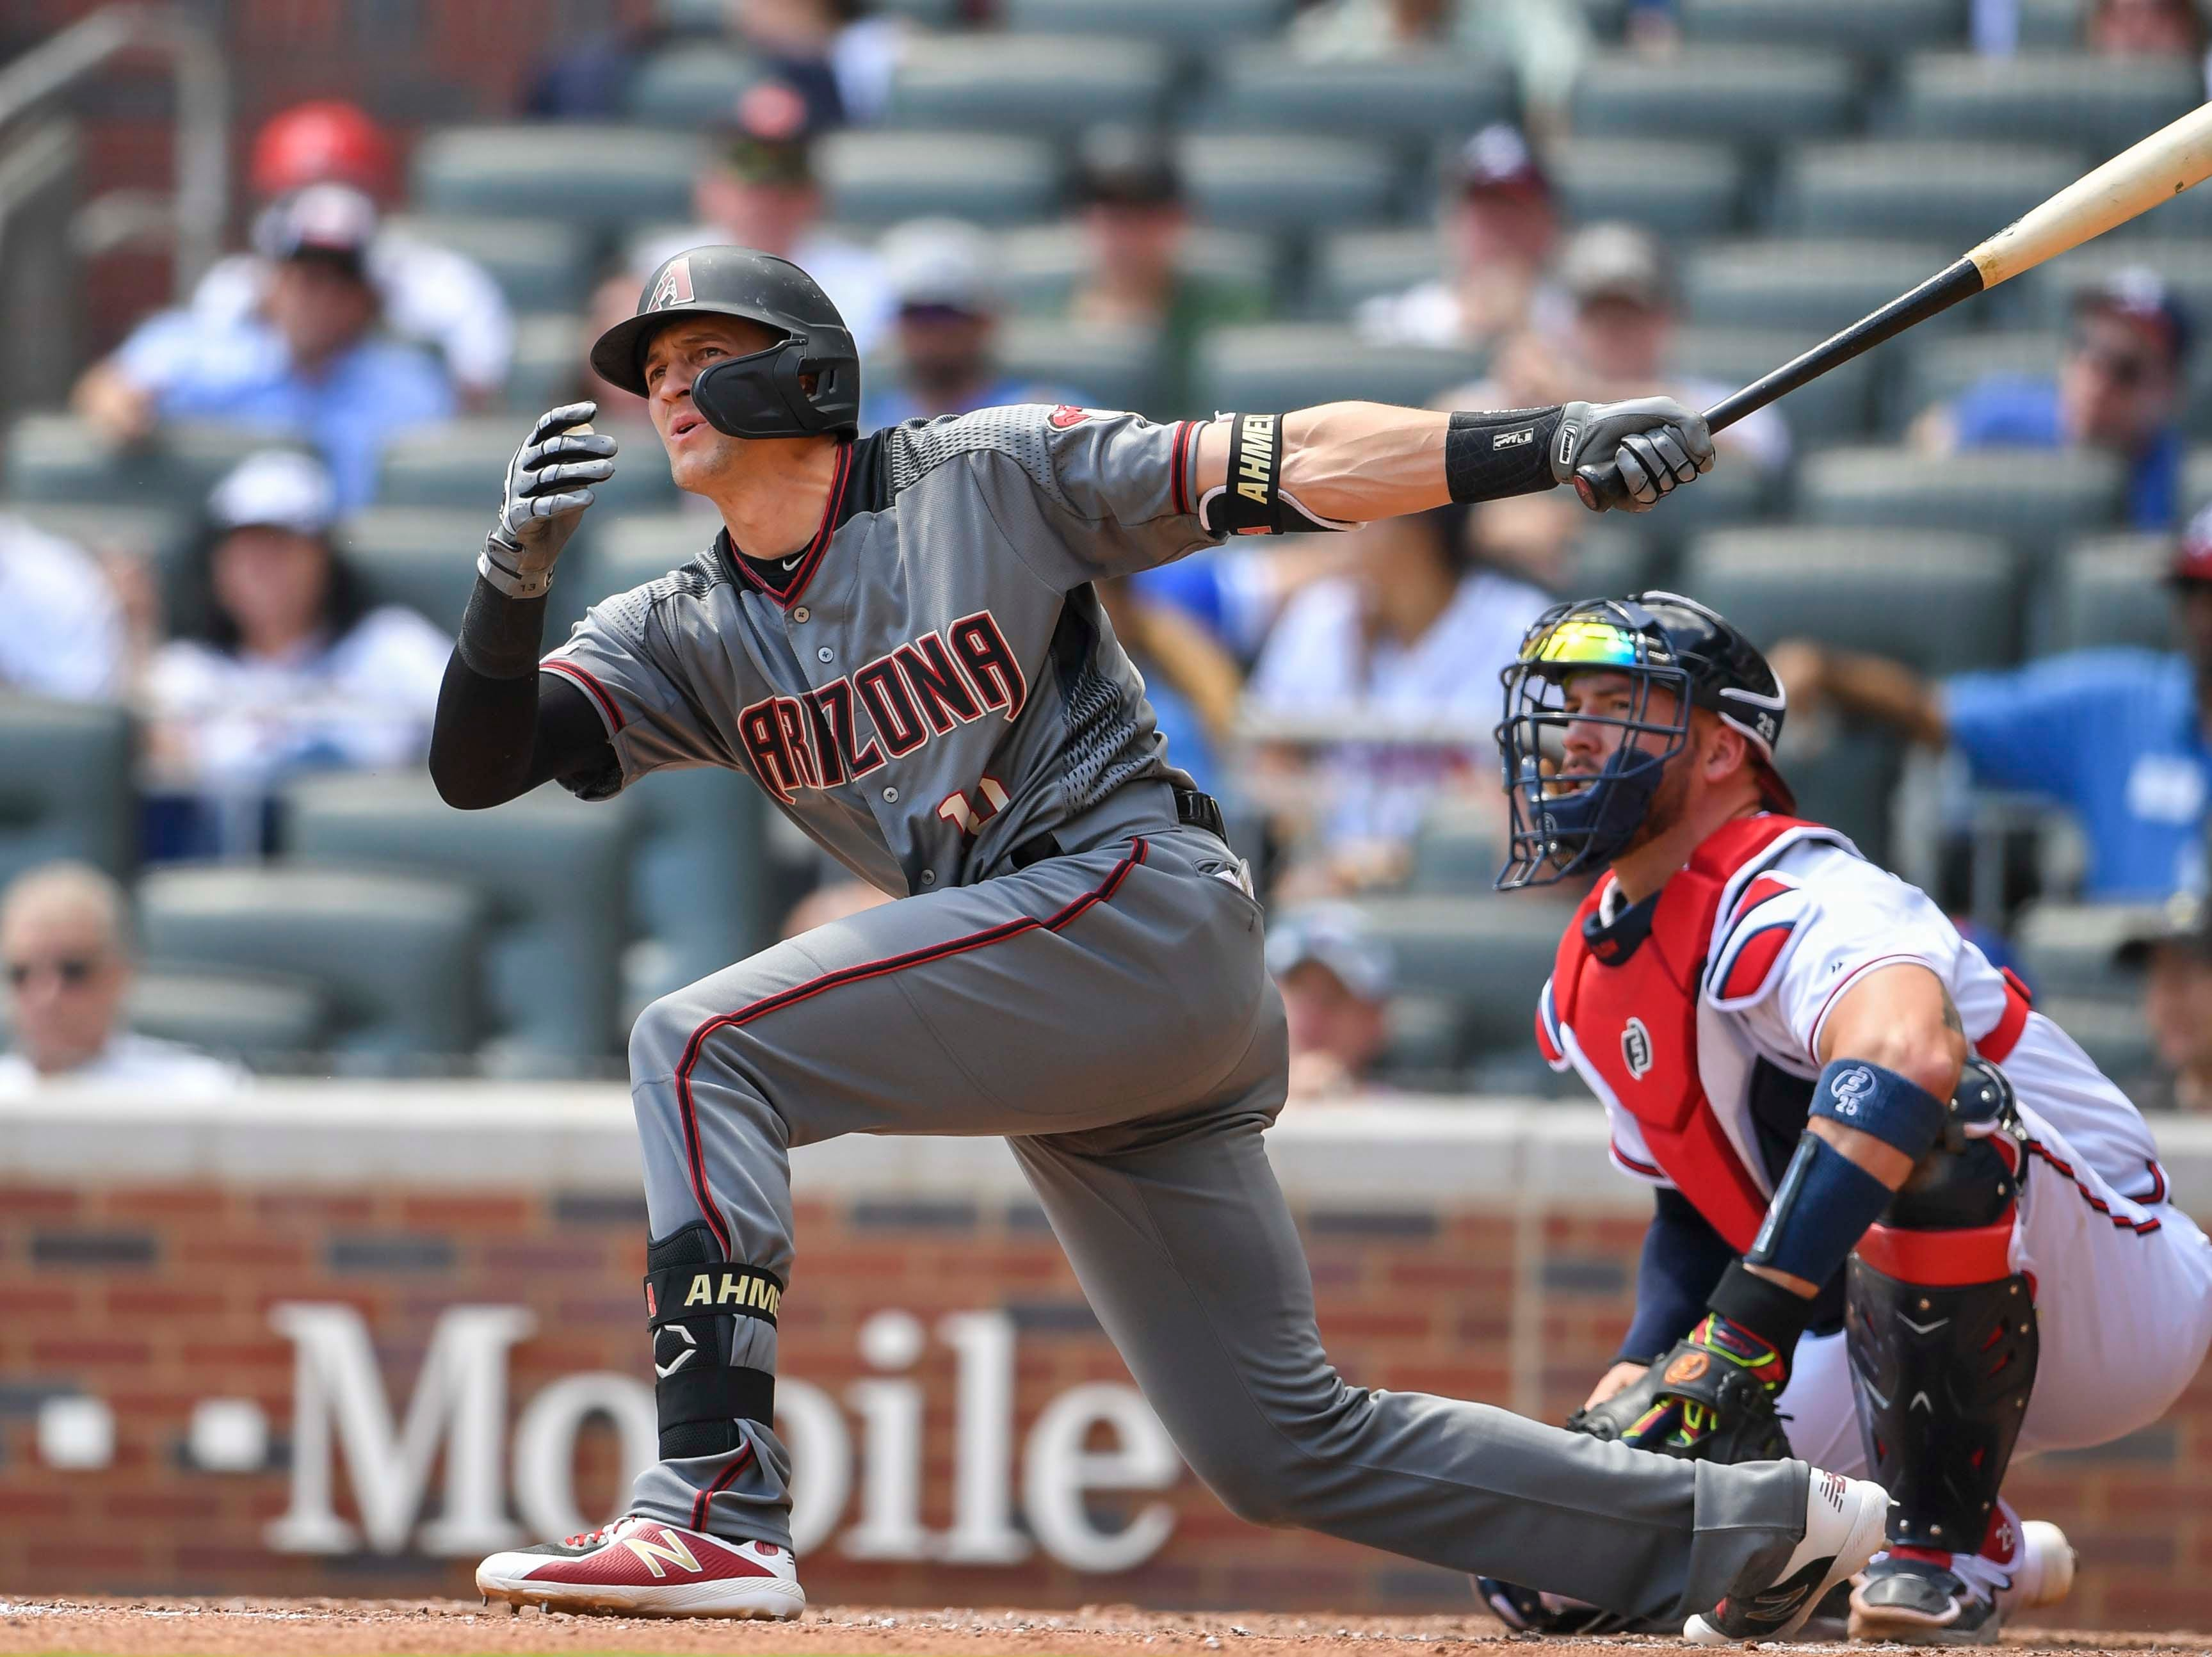 Apr 18, 2019; Atlanta, GA, USA; Arizona Diamondbacks pinch hitter Nick Ahmed (13) hits a double to drive in a run against the Atlanta Braves during the seventh inning at SunTrust Park. Mandatory Credit: Dale Zanine-USA TODAY Sports